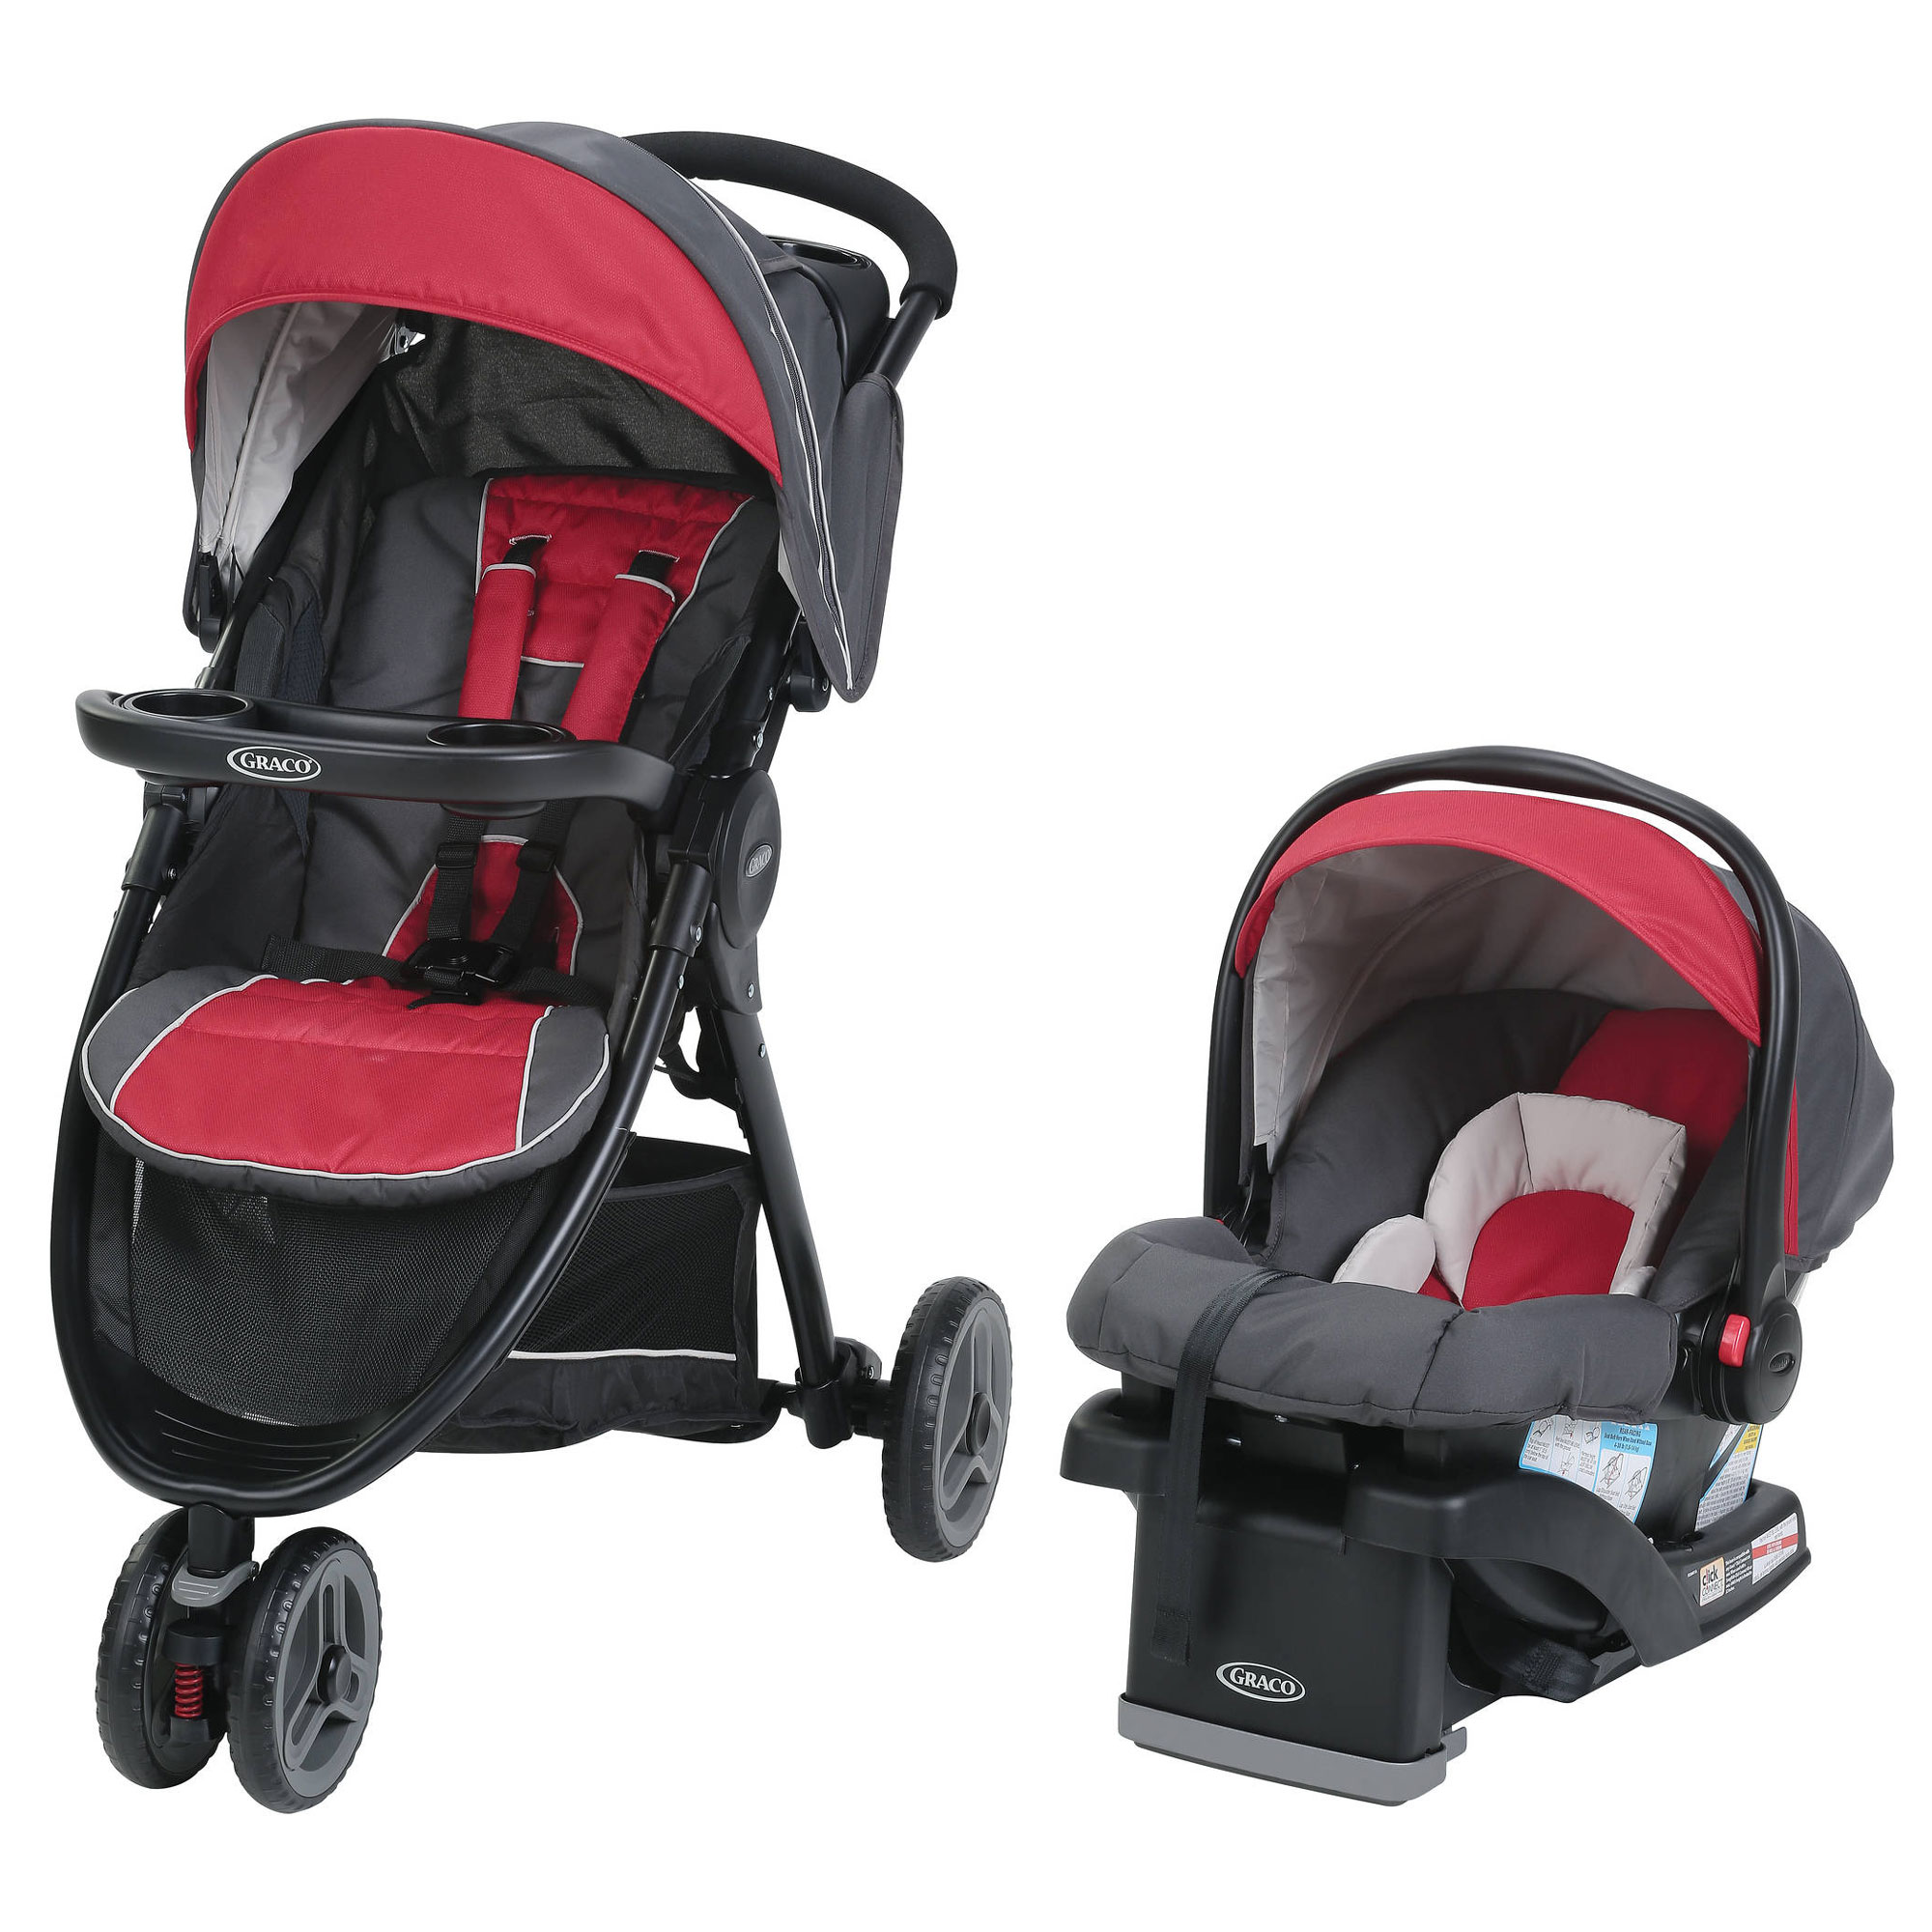 Graco FastAction Fold Sport LX Travel System Stroller, Seat, and Base, Chili Red